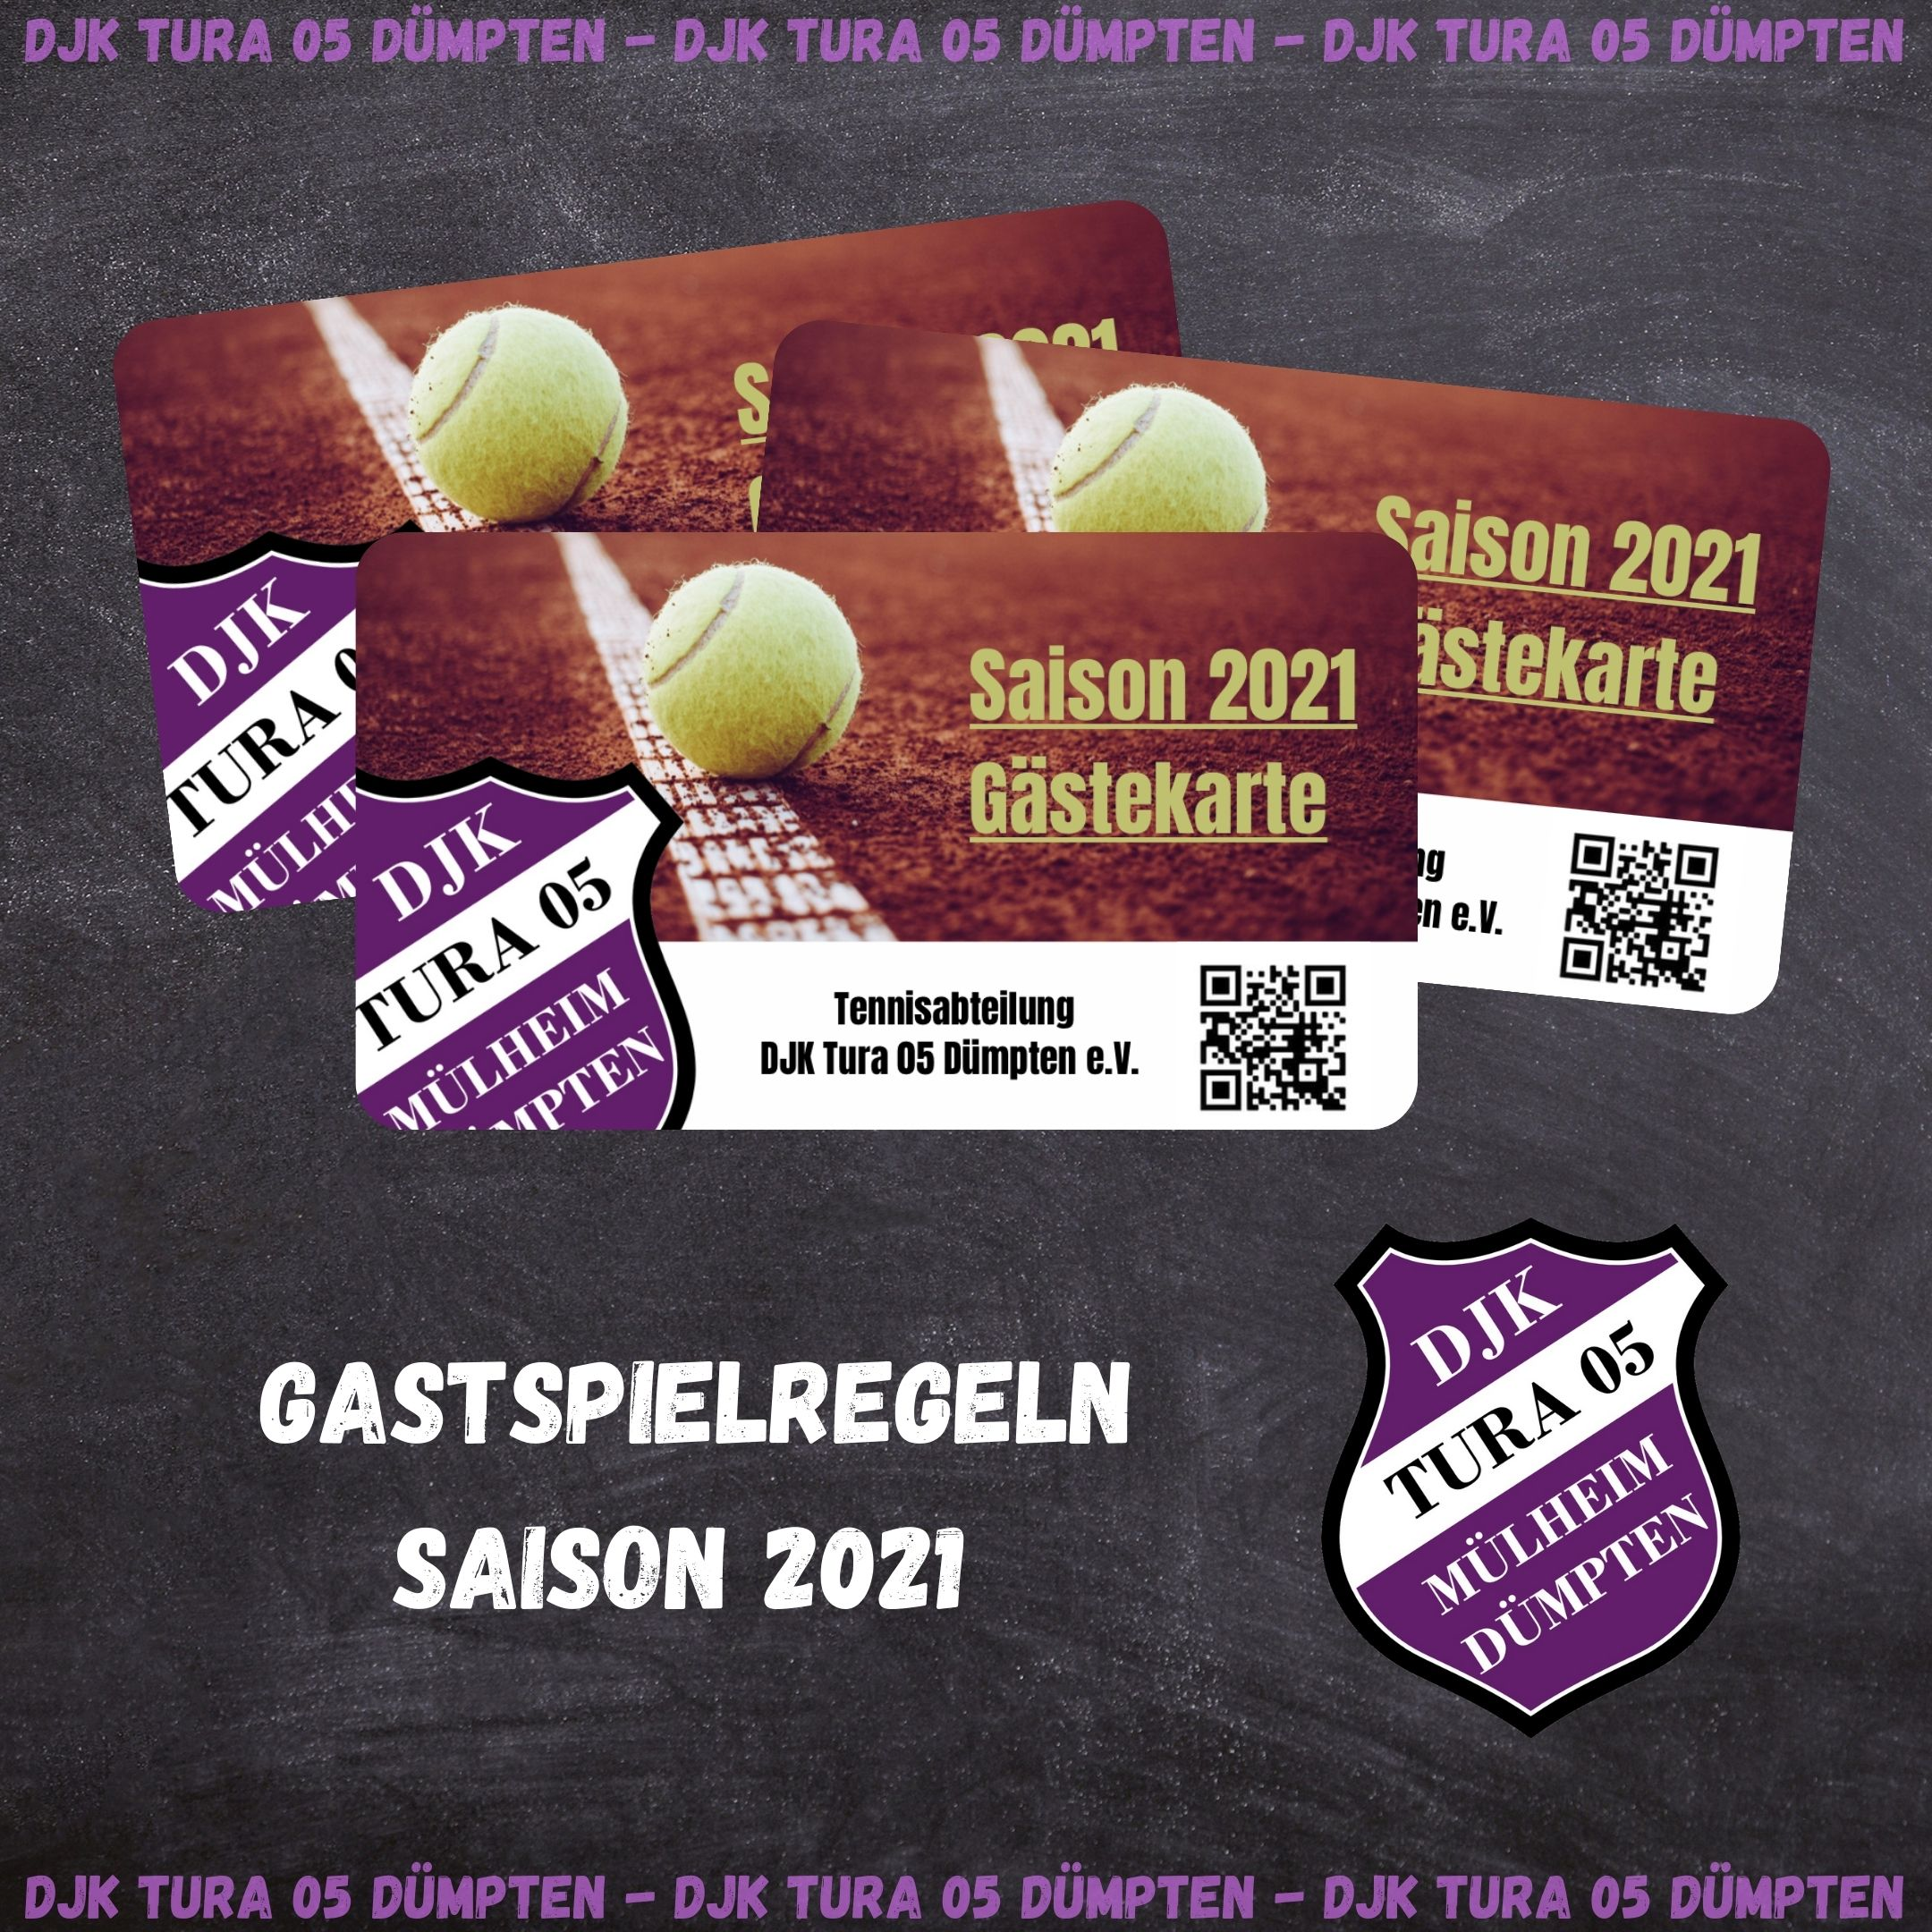 You are currently viewing Gastspielerregelung